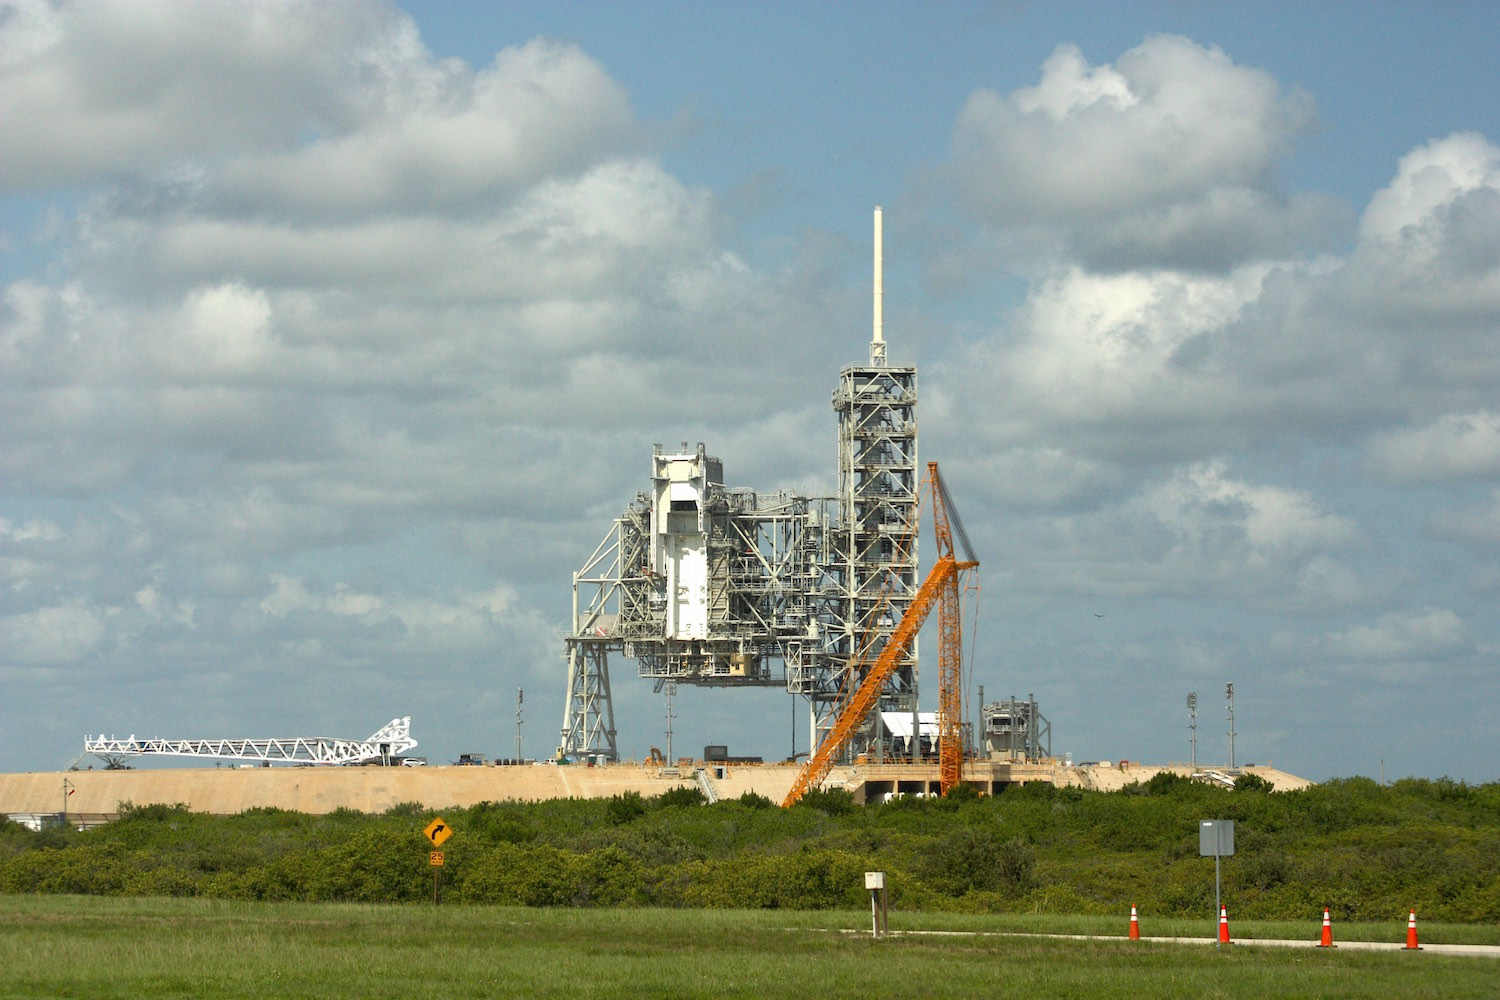 spacex launch pad 39a - photo #41